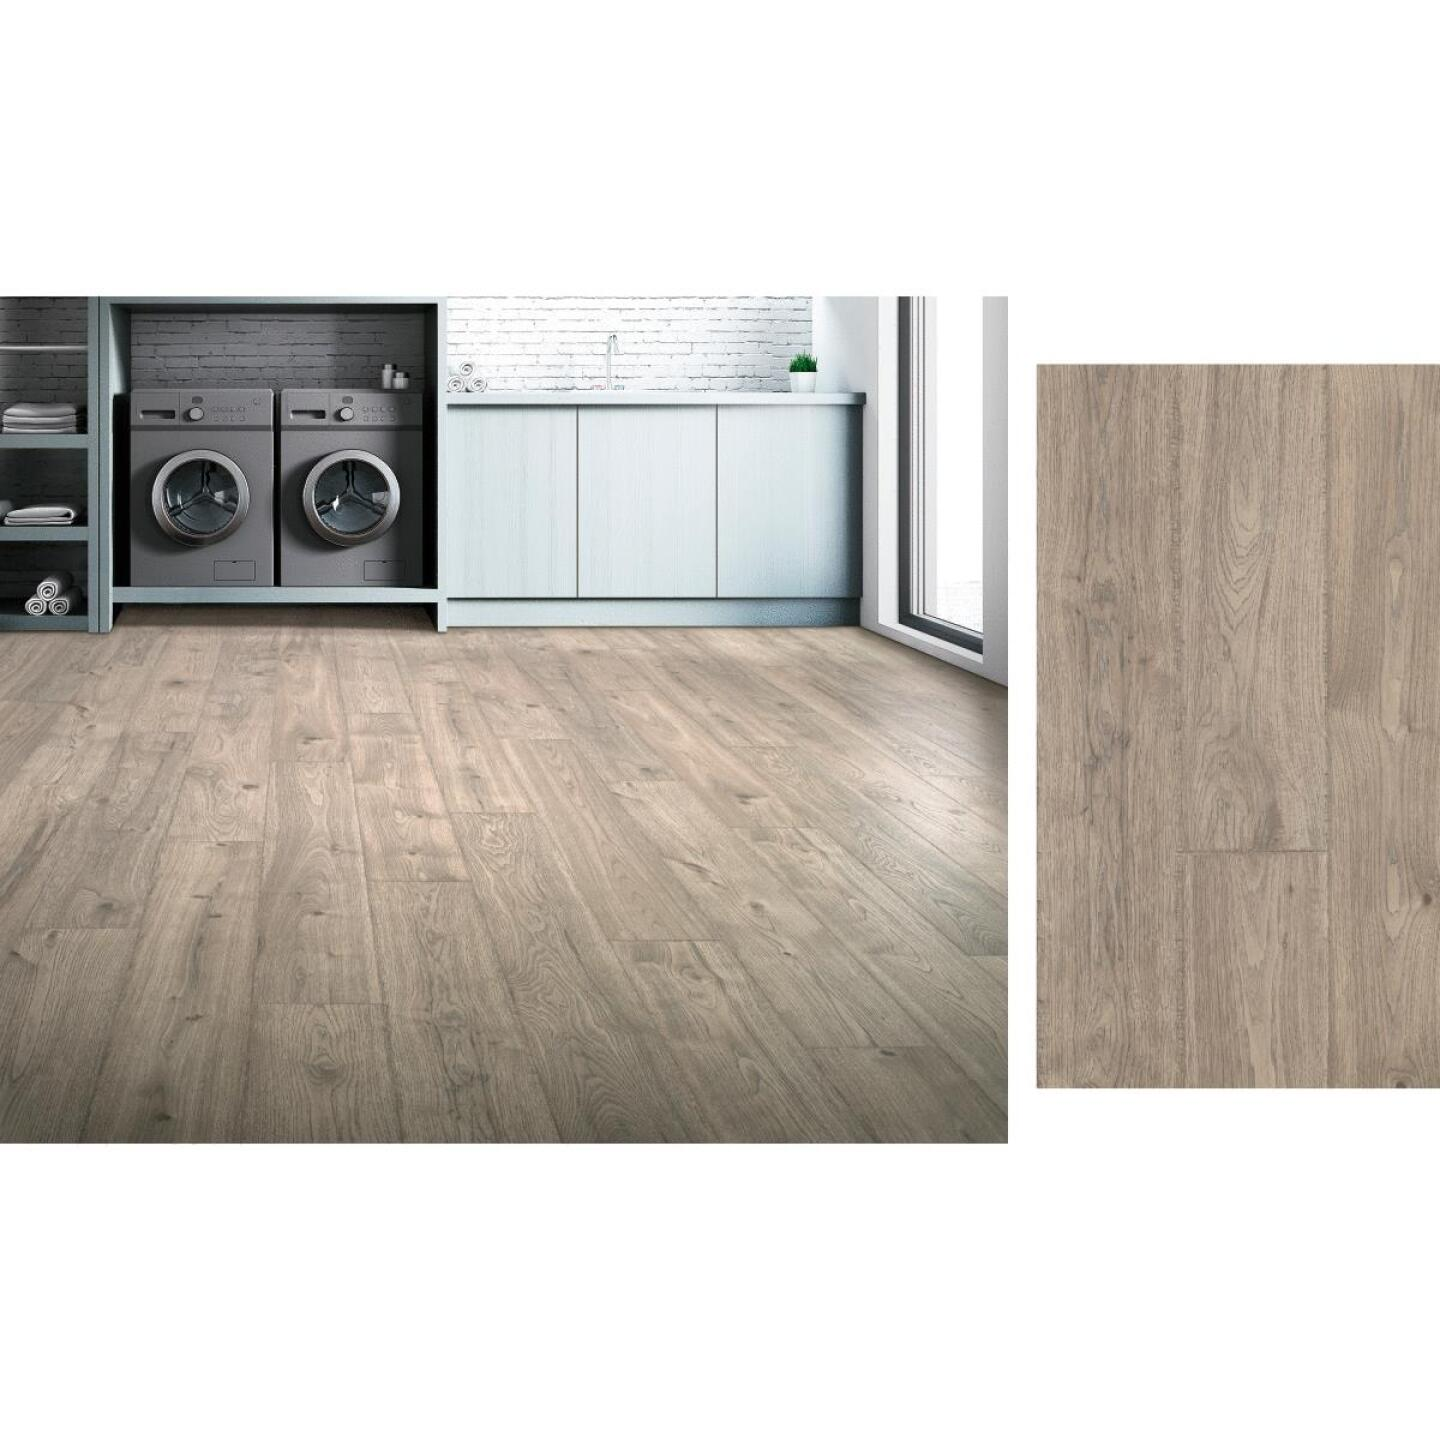 Mohawk RevWood Plus Elderwood Asher Gray 7-1/2 In. W x 54-11/32 In. L Laminate Flooring (16.98 Sq. Ft./Case) Image 1